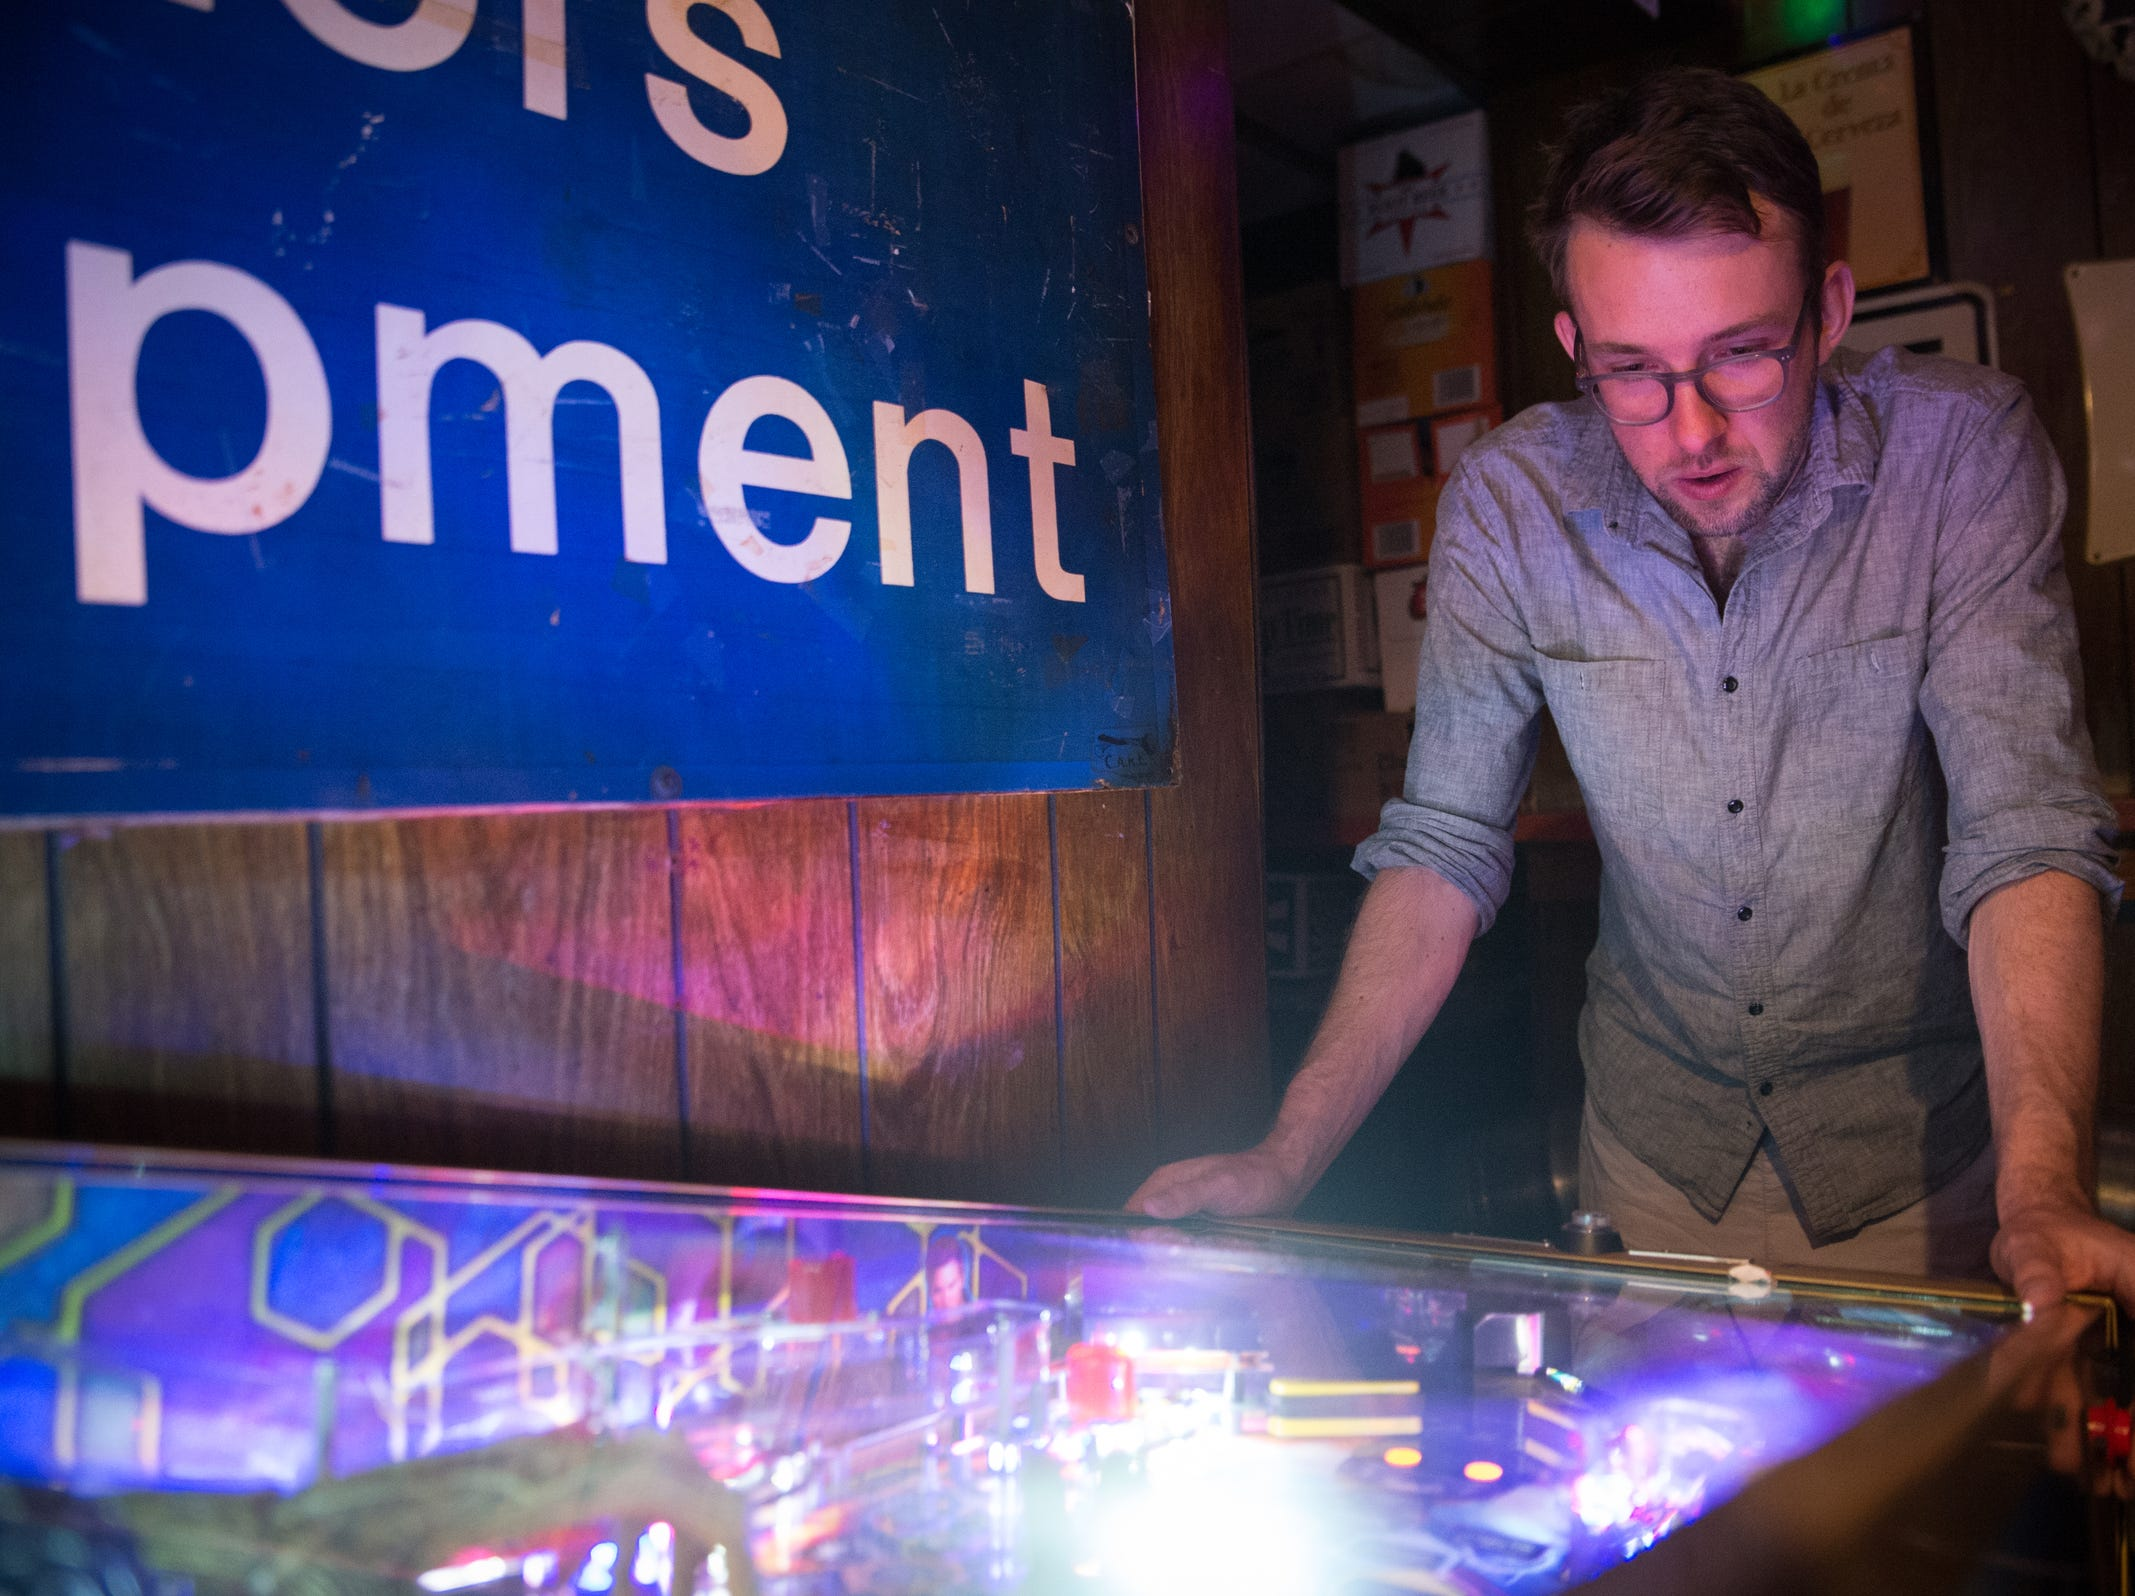 Rob Gibson of Detroit plays pinball at Gusoline Alley in Detroit on Friday, July 20, 2018.